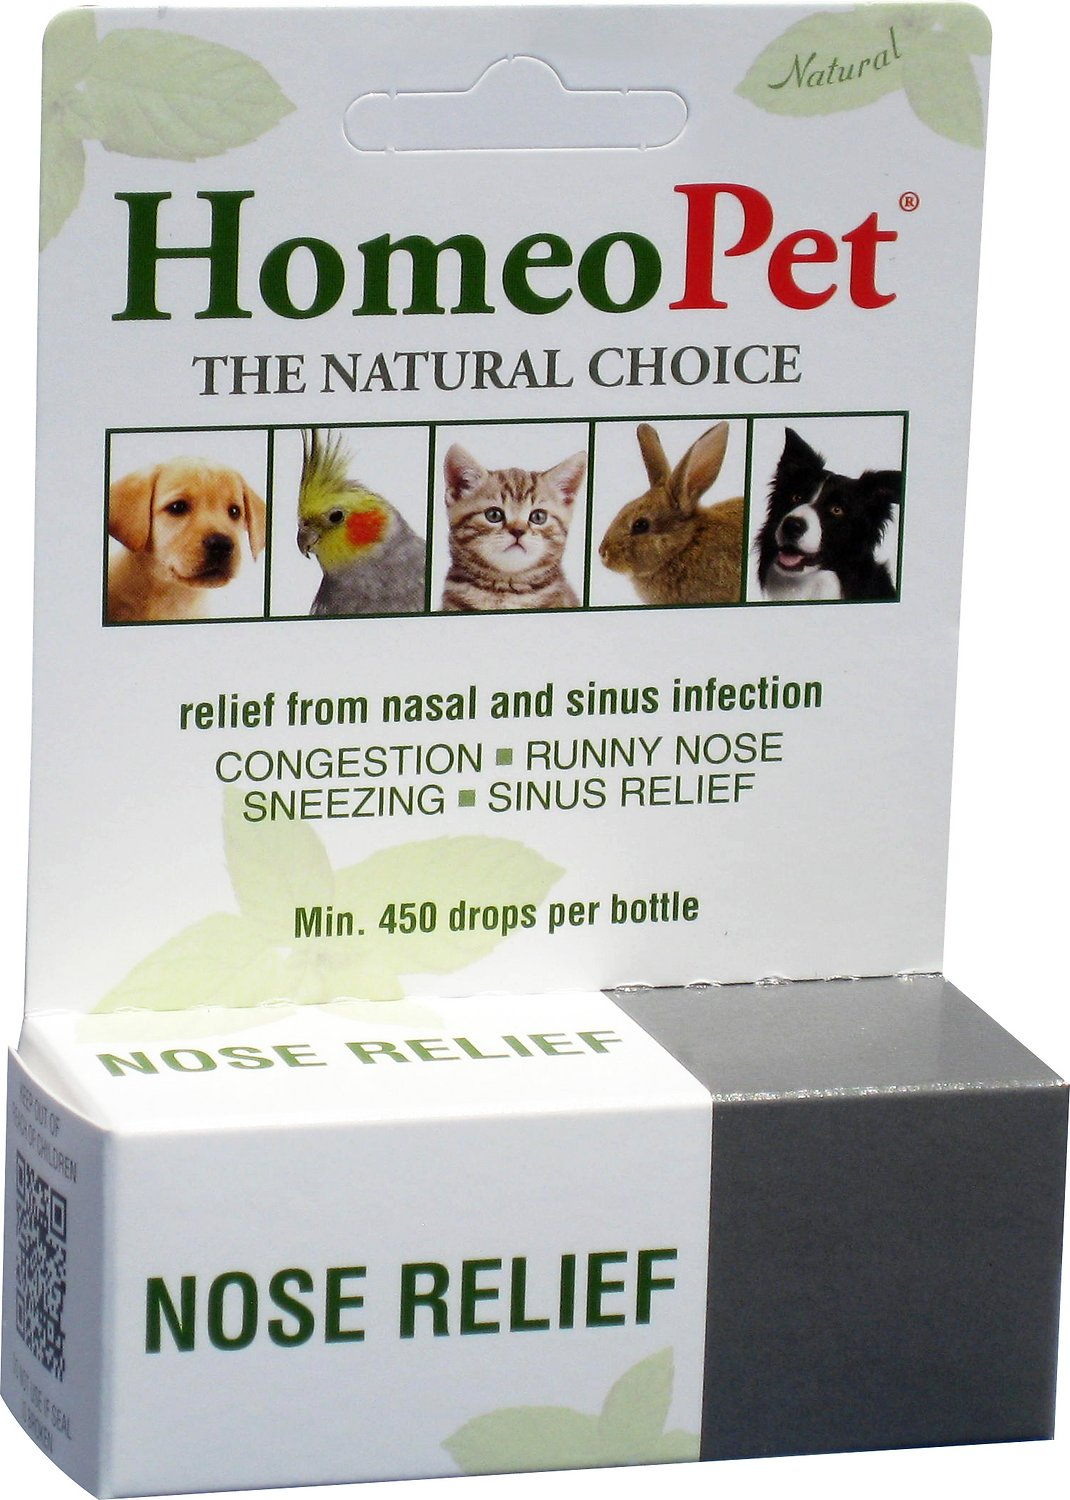 HomeoPet Nose Relief Dog, Cat, Bird & Small Animal Supplement, 450 drops